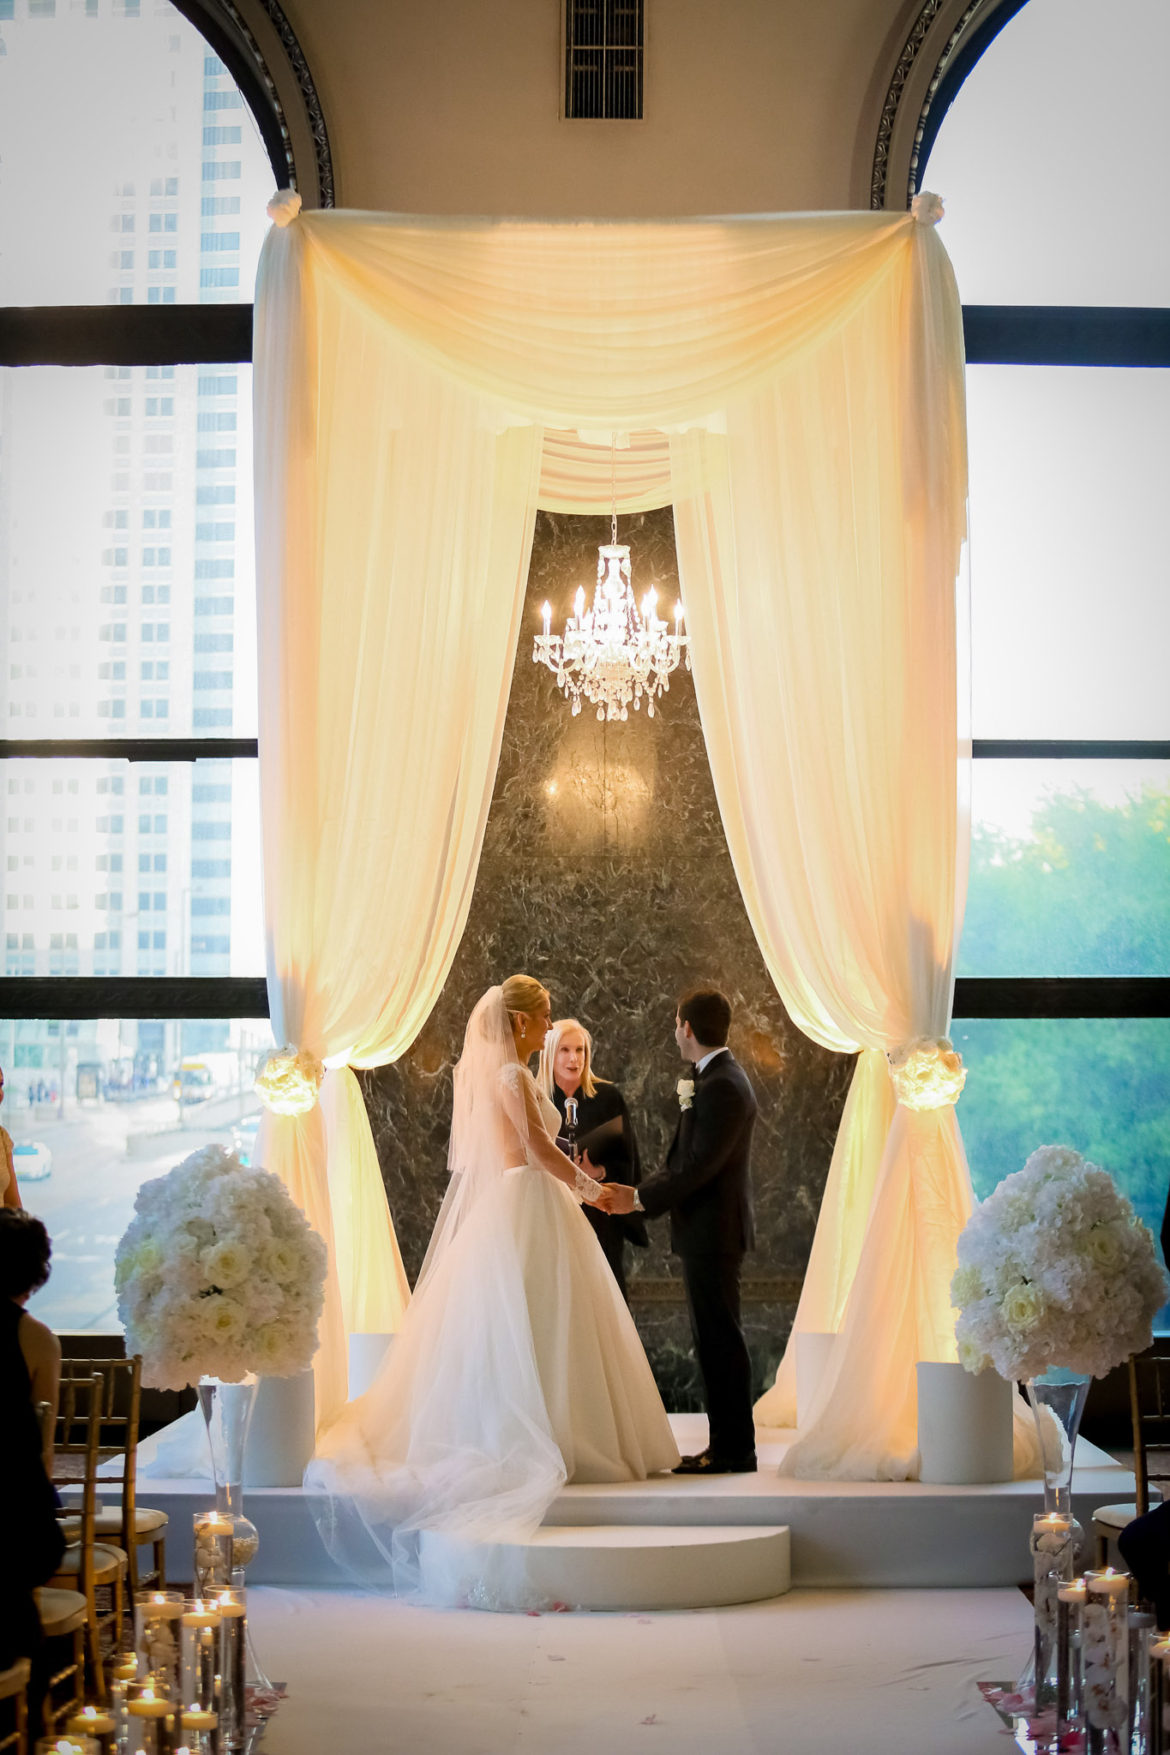 Elegant_Event_Lighting_Chicago_Cultural_Center_GAR_Hall_Wedding_Ceremony_Ivory_Bridal_Canopy_Chuppah_Crystal_Chandelier_Stage_Cover_Aisle_Runner_Elegant